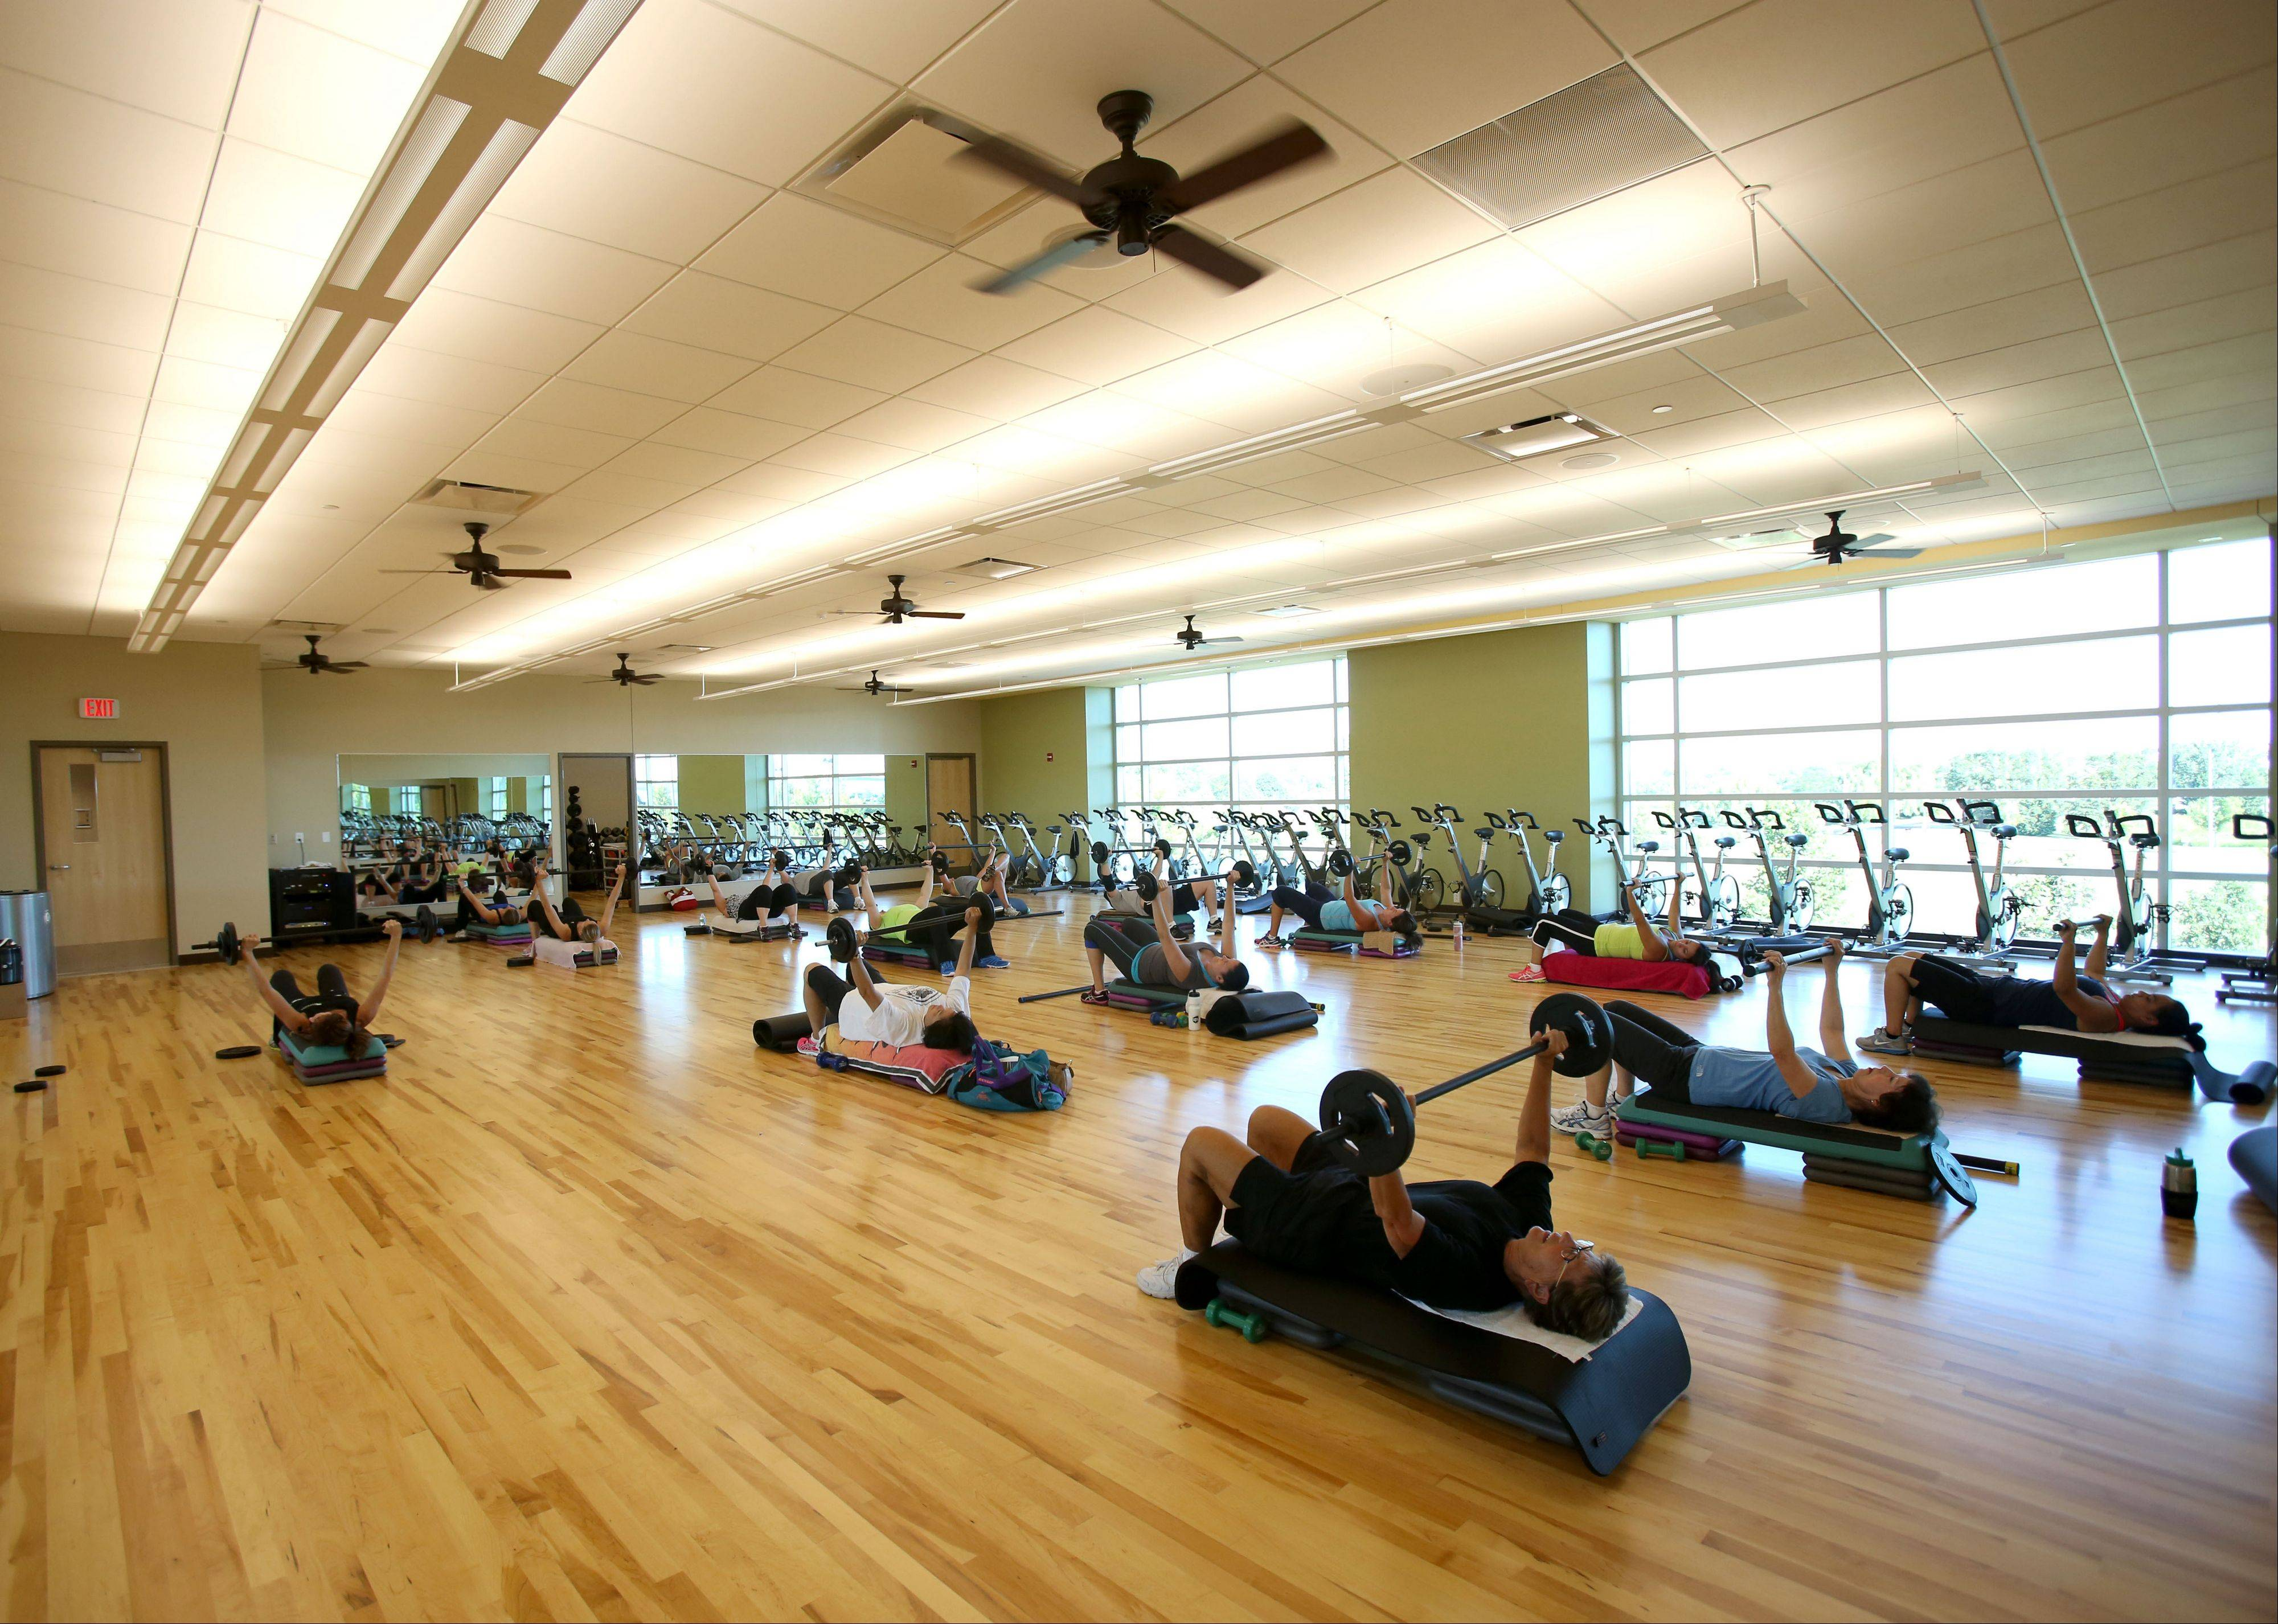 The new Fountain View Recreation Center in Carol Stream has two fitness class studios. A body pump class is one of several classes offered.